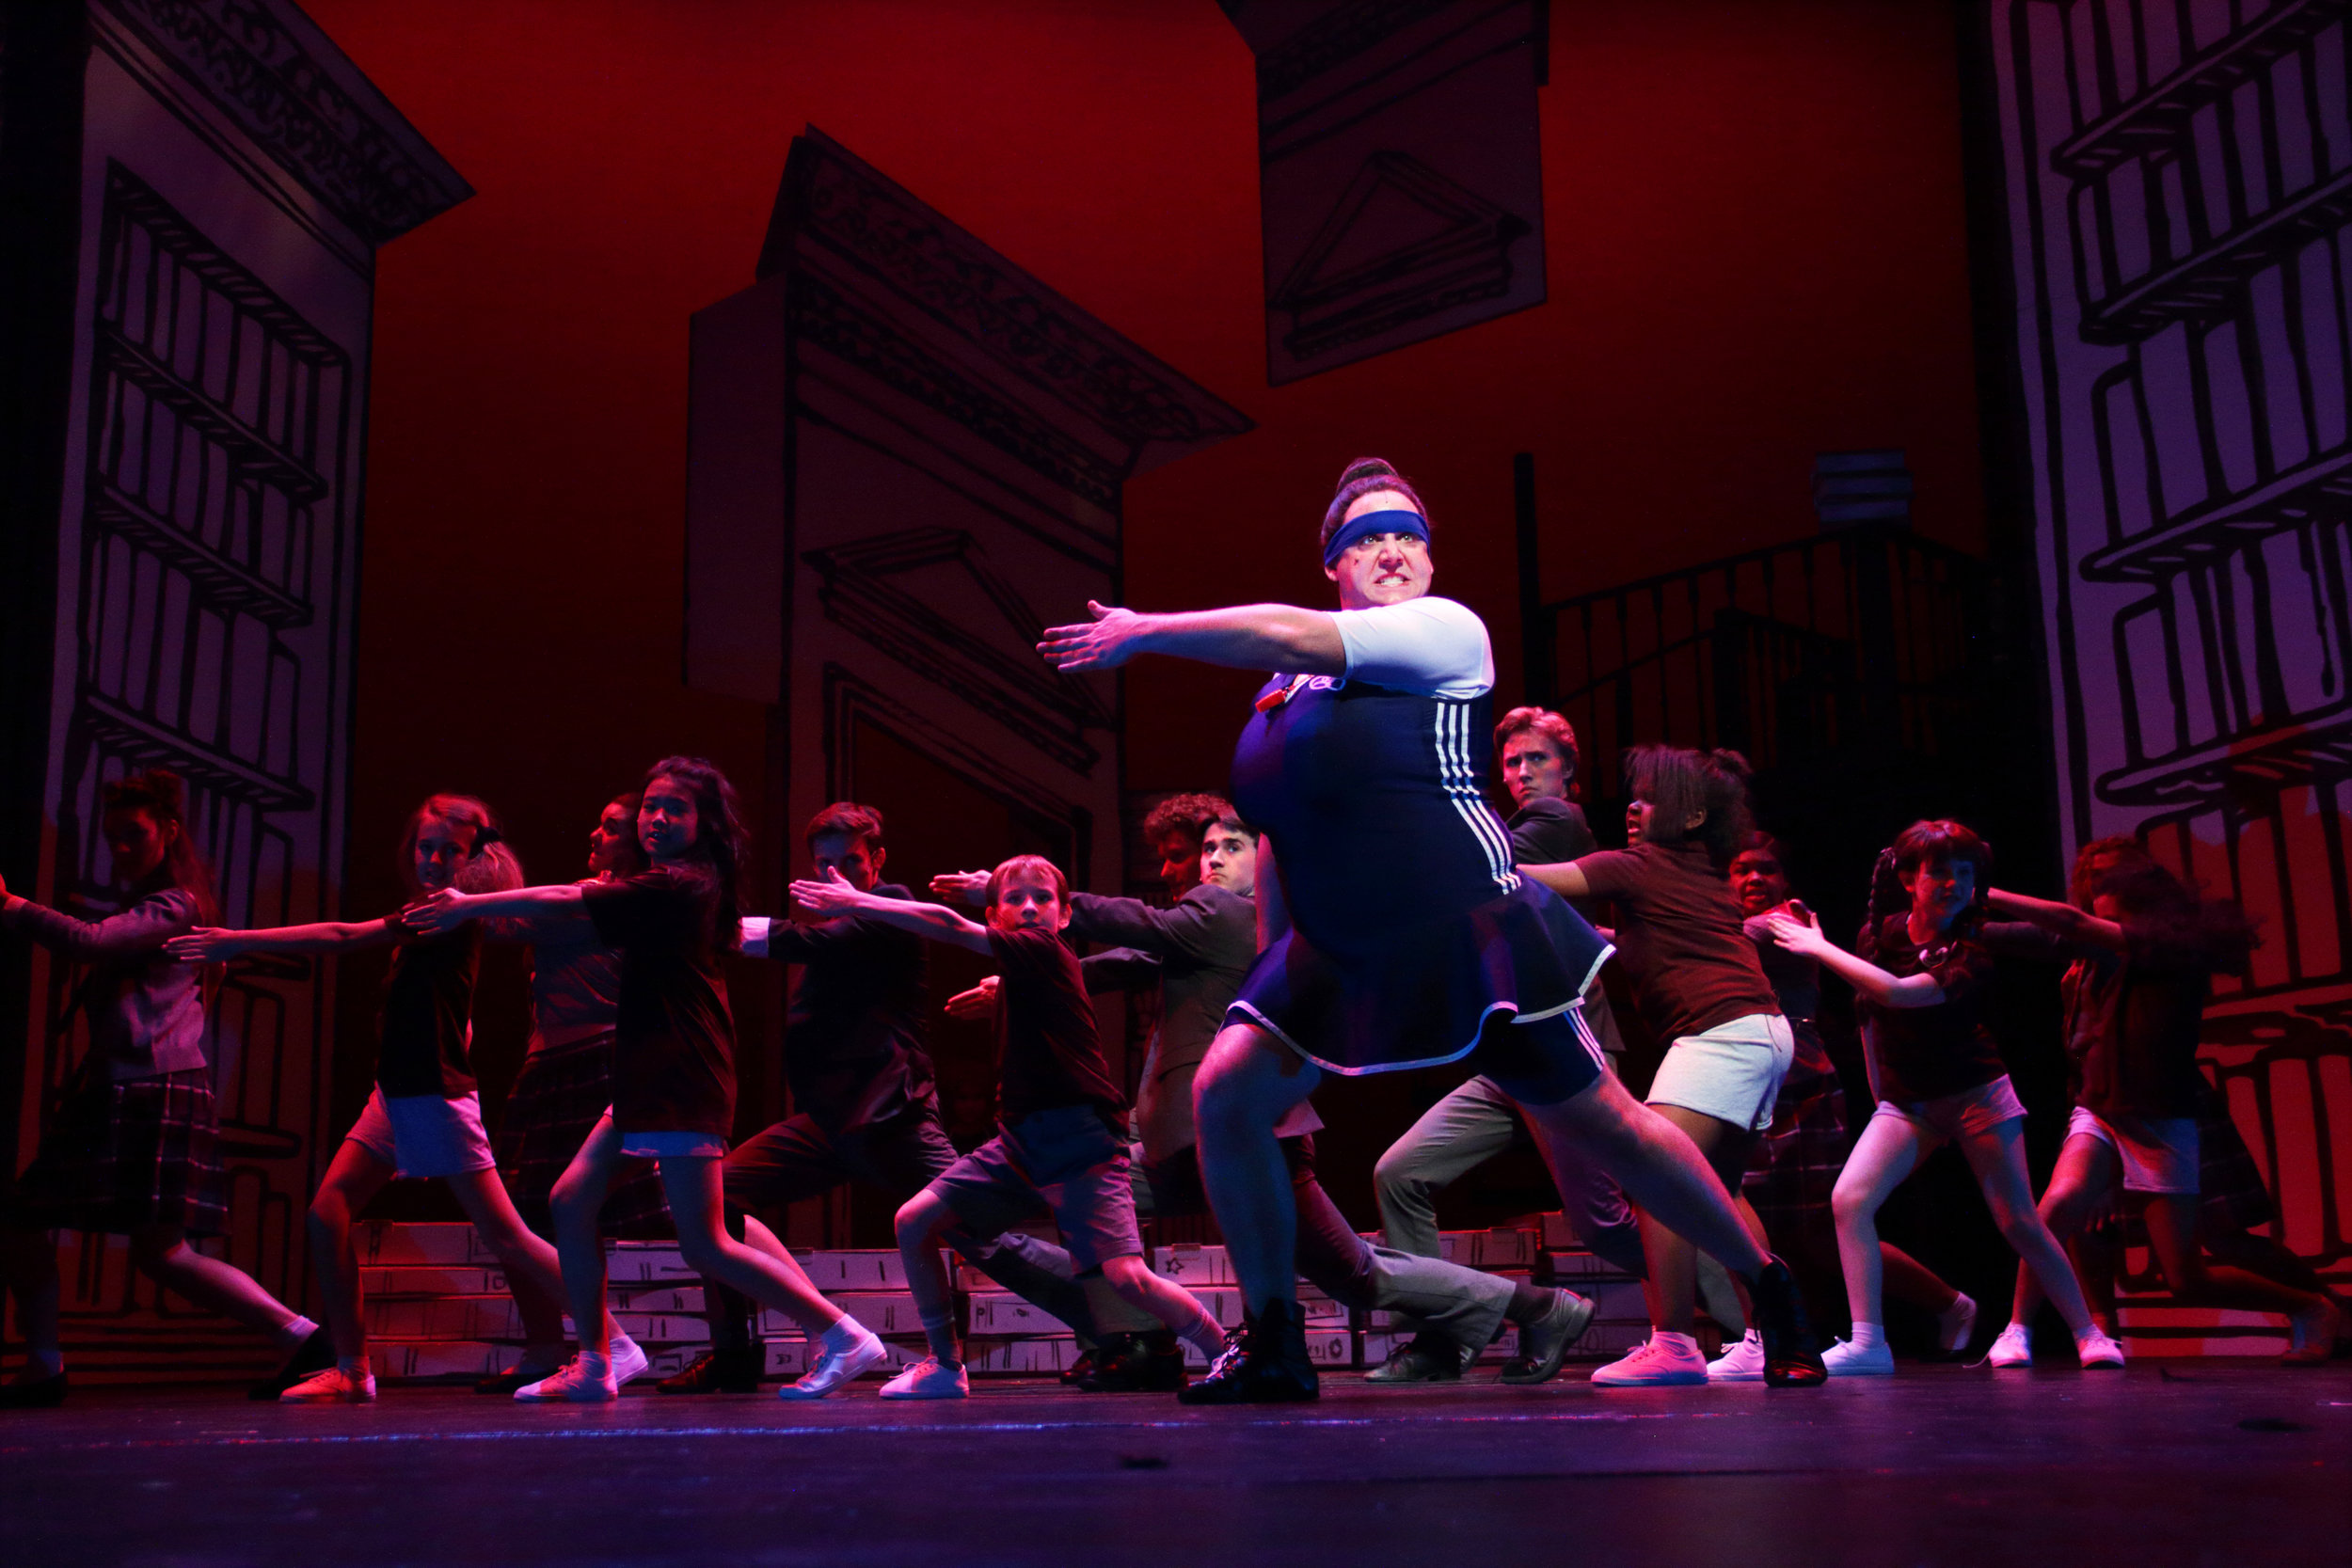 The Smell of Rebellion | Matilda The Musical